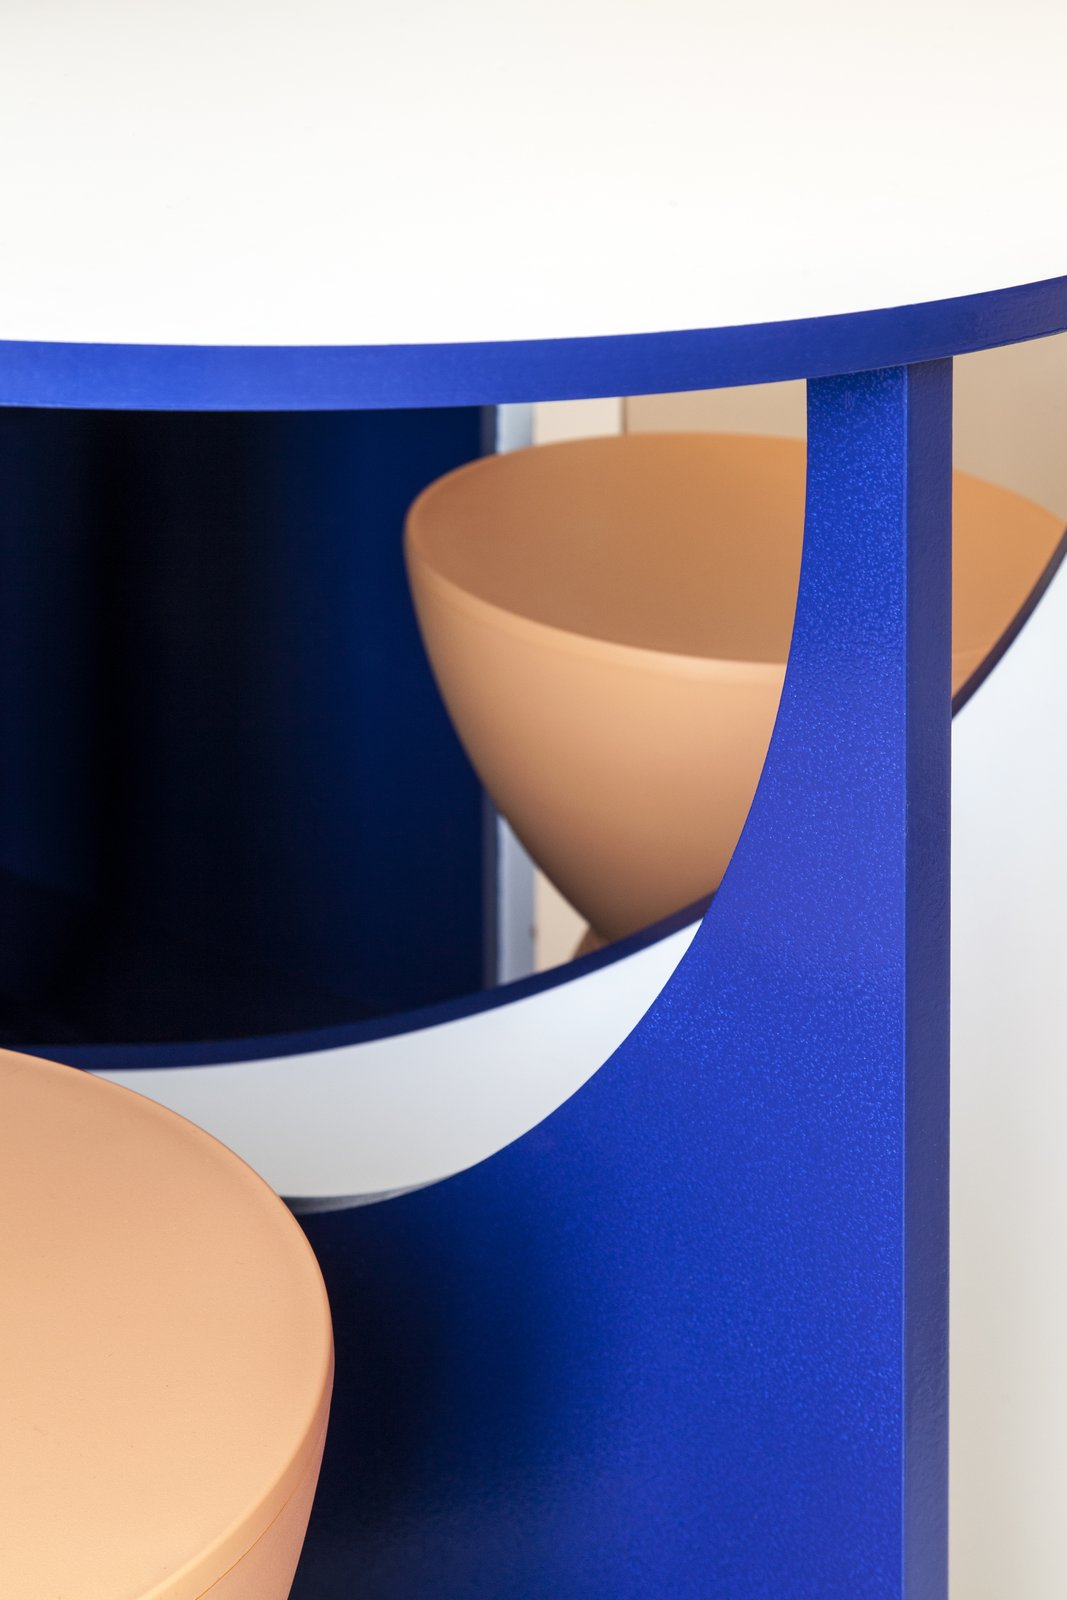 A detail of the brilliantly colored pop-out table.